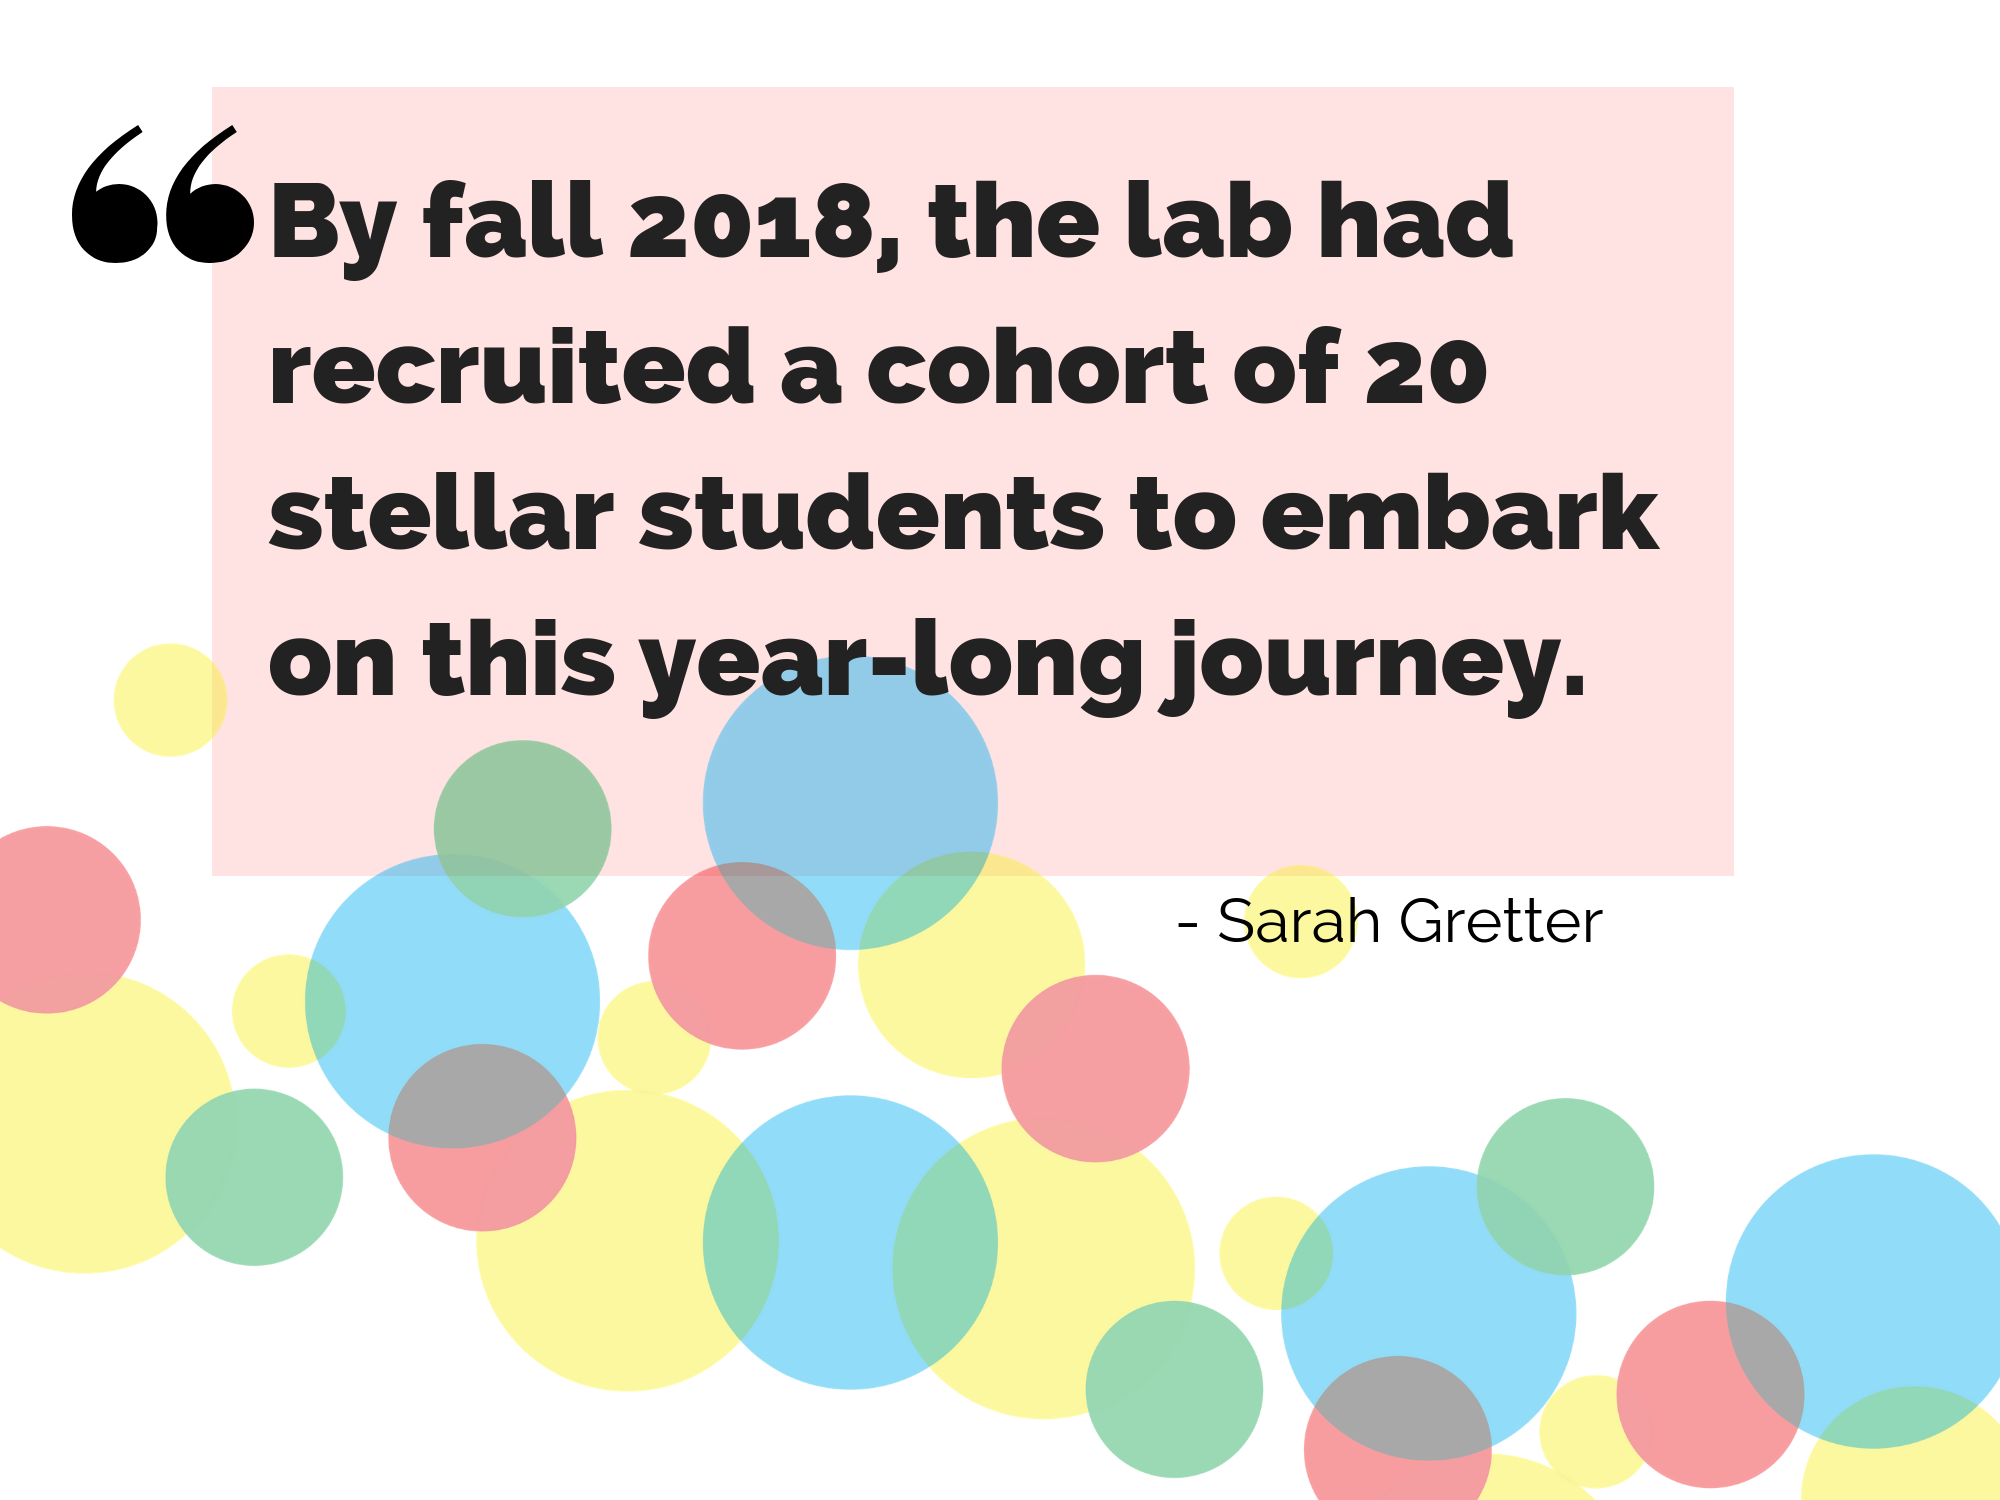 By fall 2018, the lab had recruited a cohort of 20 stellar students to embark on this year-long journey. - Sarah Gretter